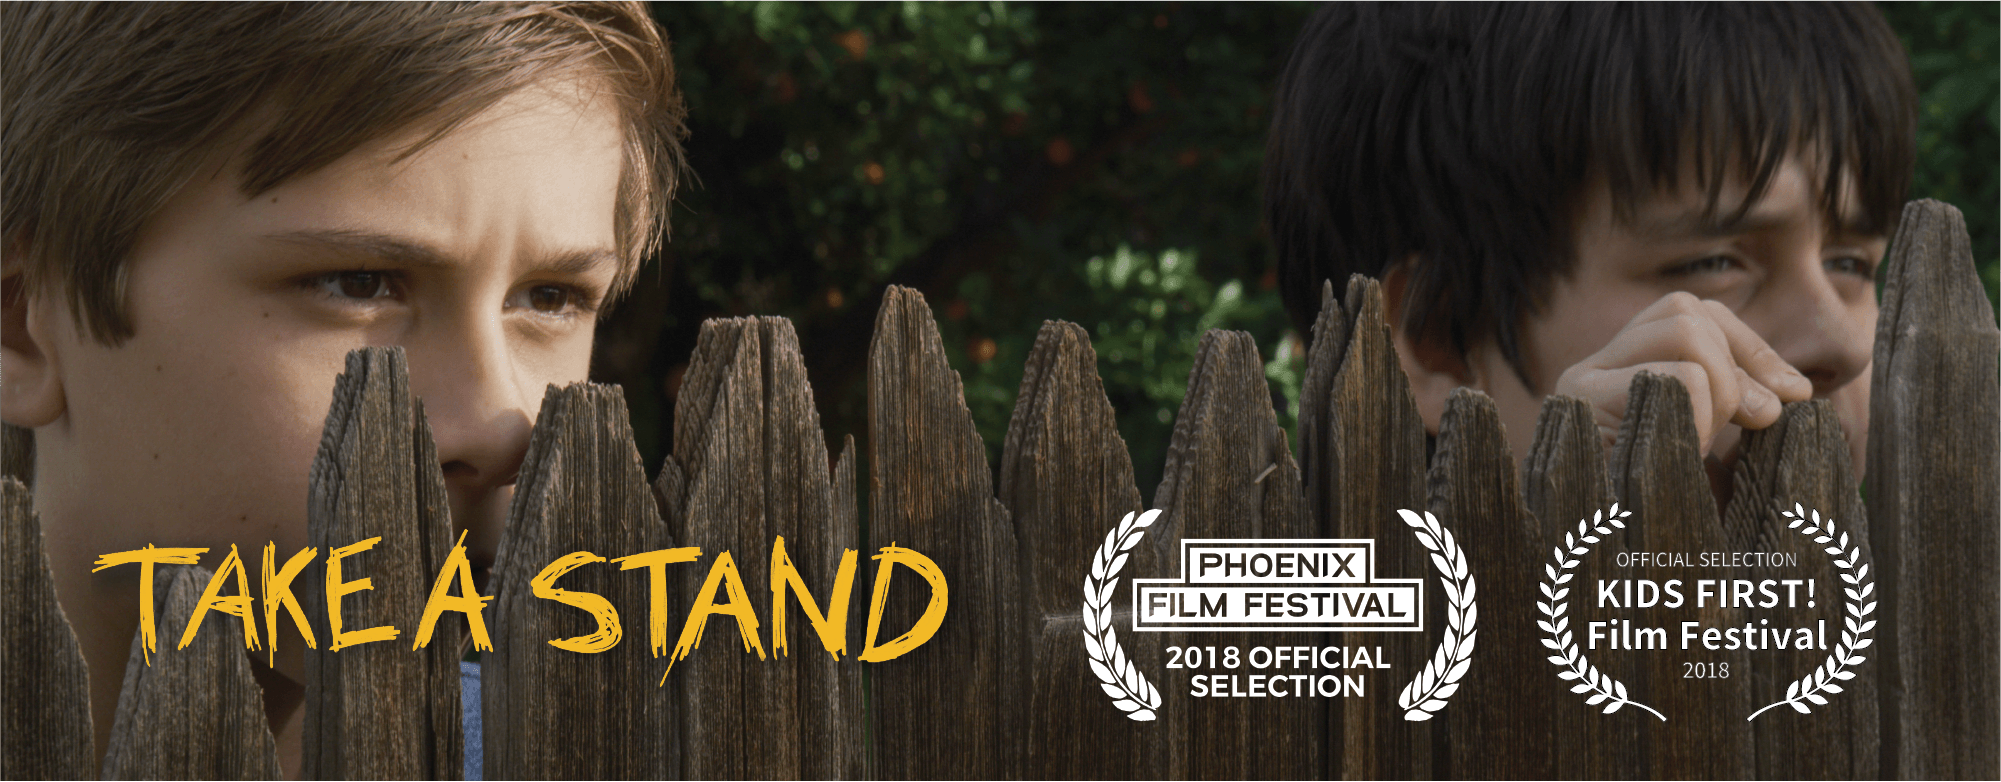 """Phoenix Film Festival and KIDS FIRST! Film Festival have officially selected Dixiletta Moving Pictures short film """"Take a Stand"""" for entry."""